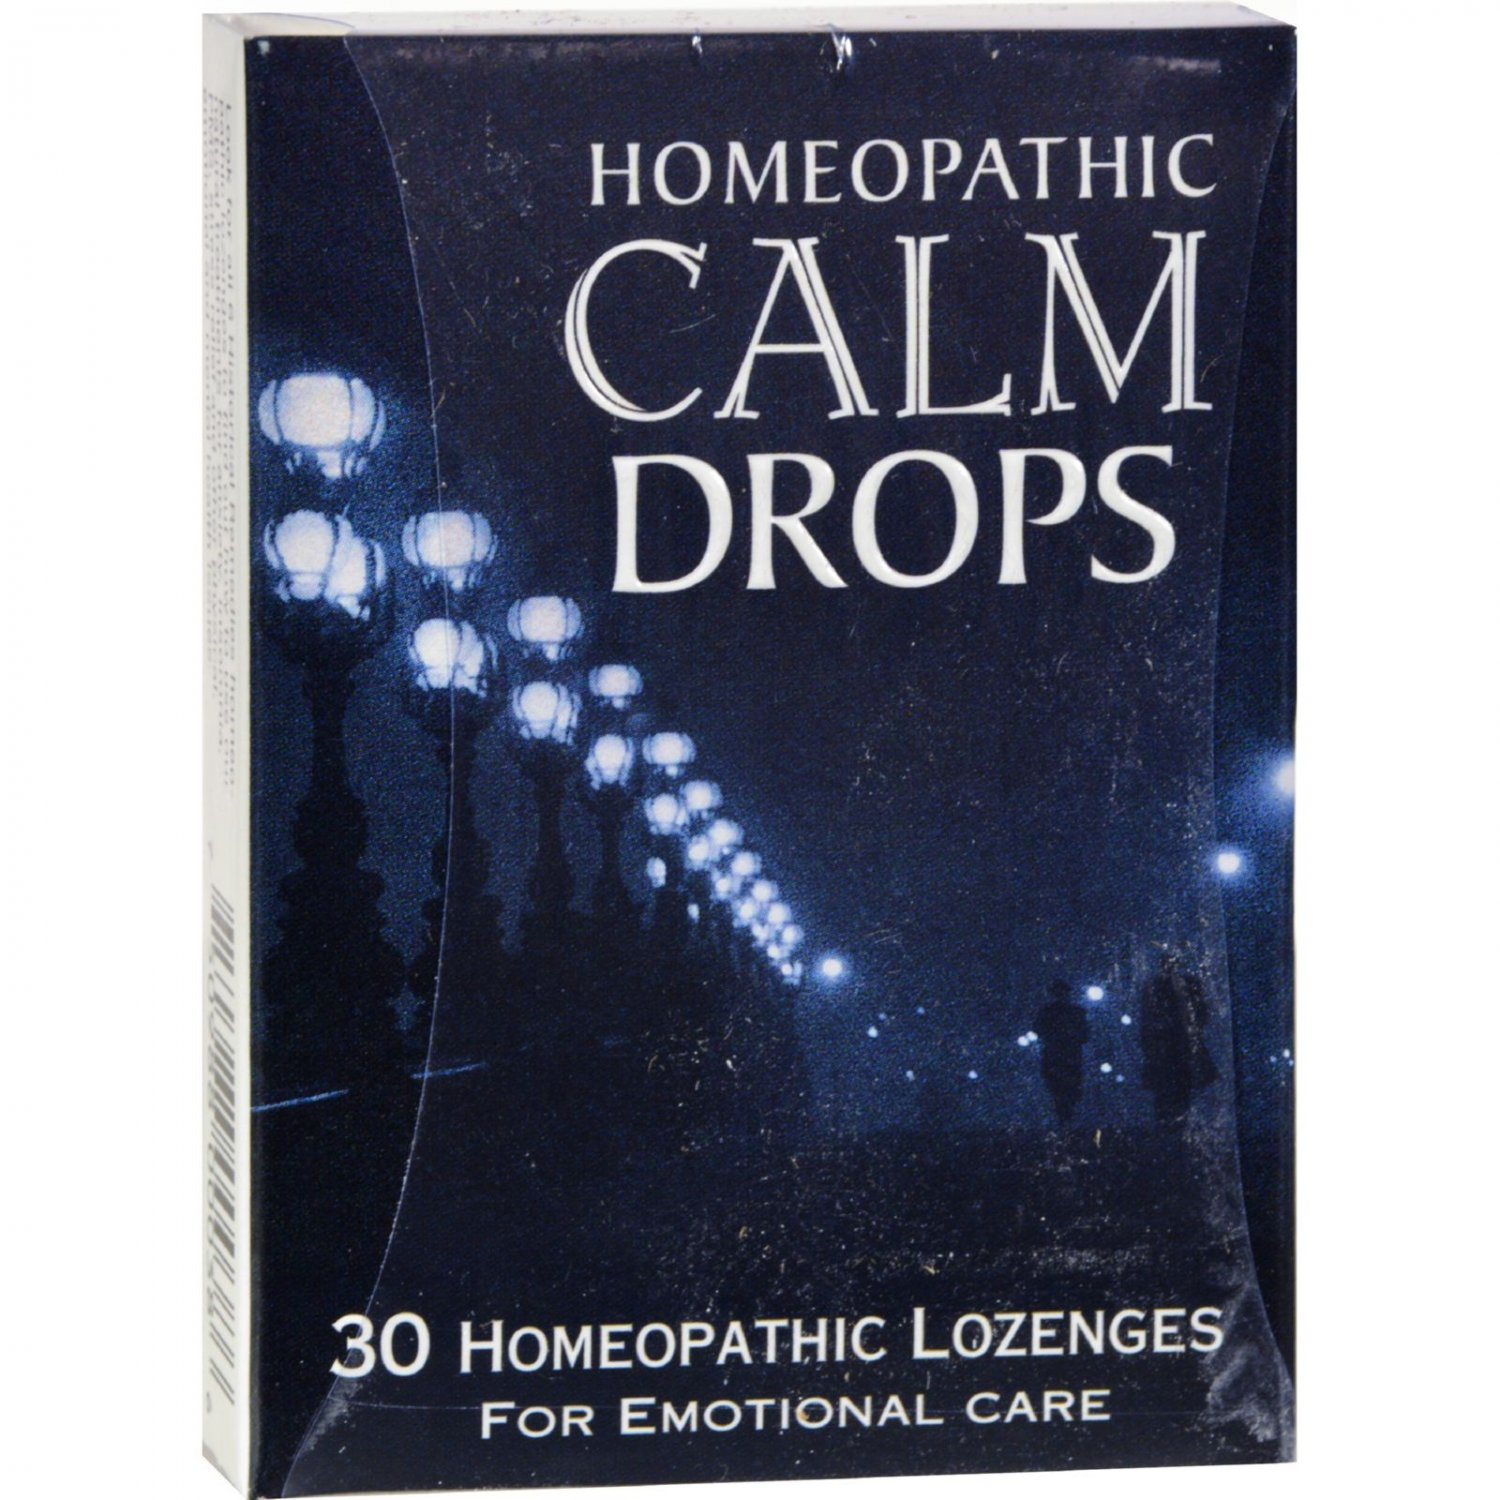 Historical Remedies Homeopathic Calm Drops - 30 Lozenges - Case of 12